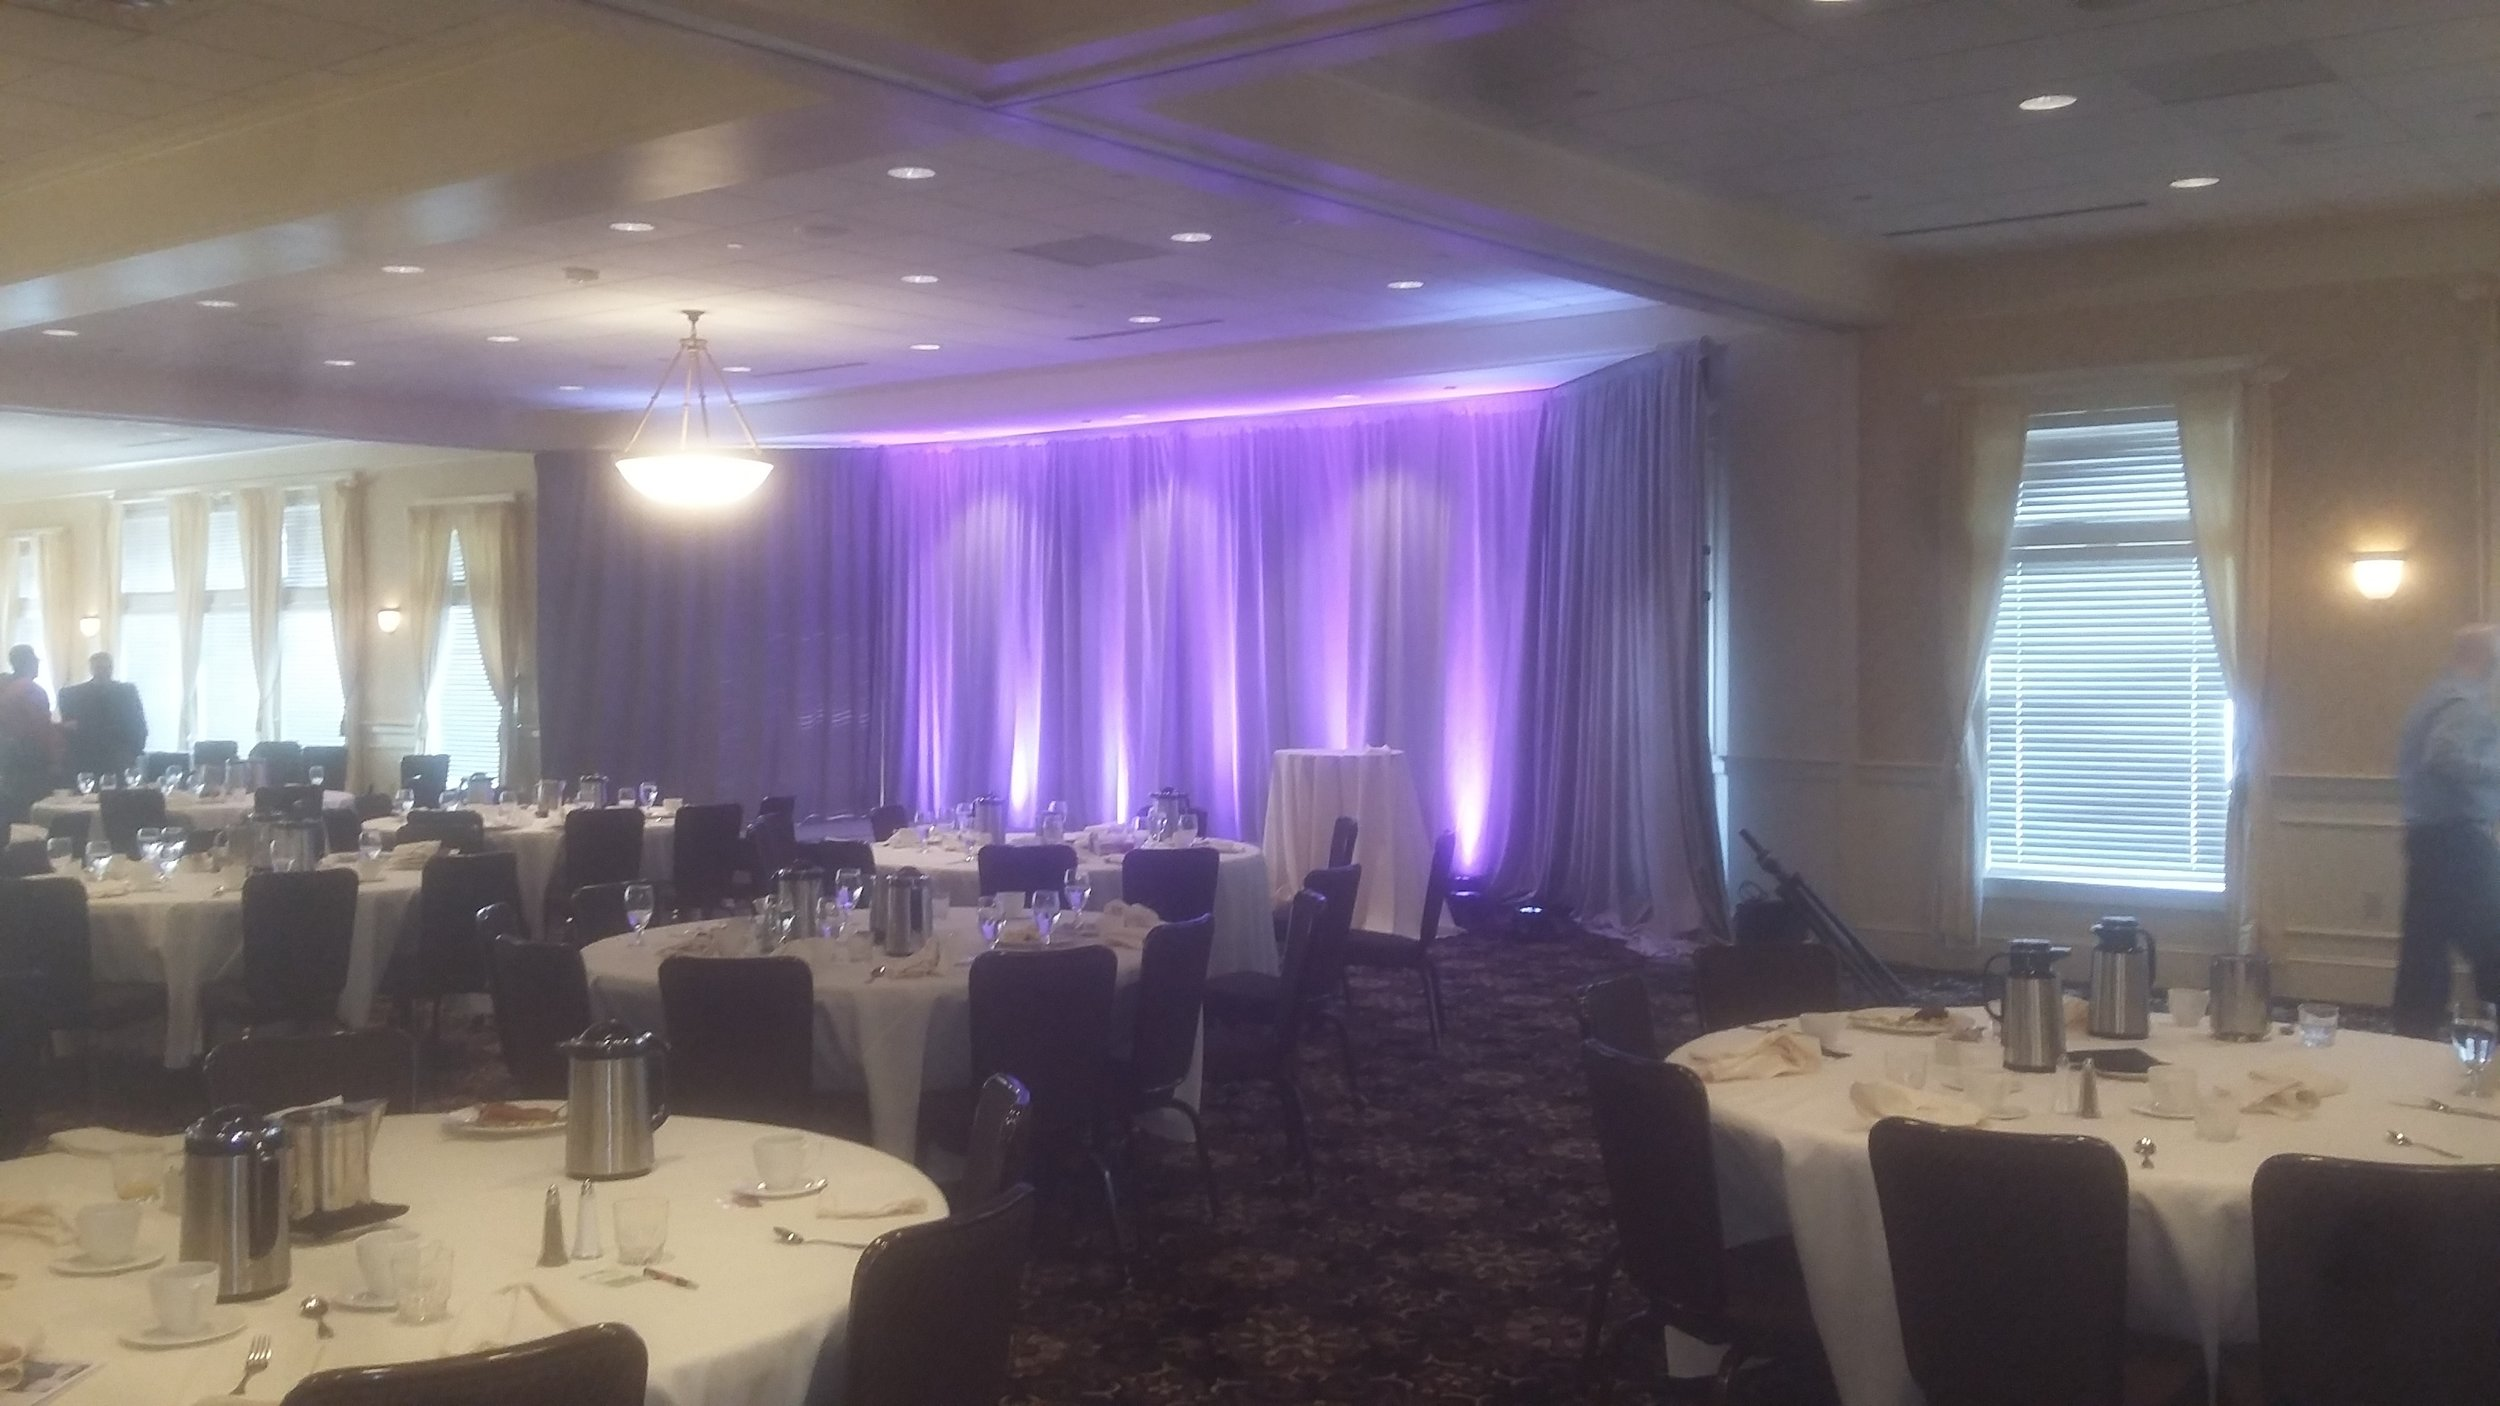 Picture of AV for You lighting rental at the Golden Valley Country Club